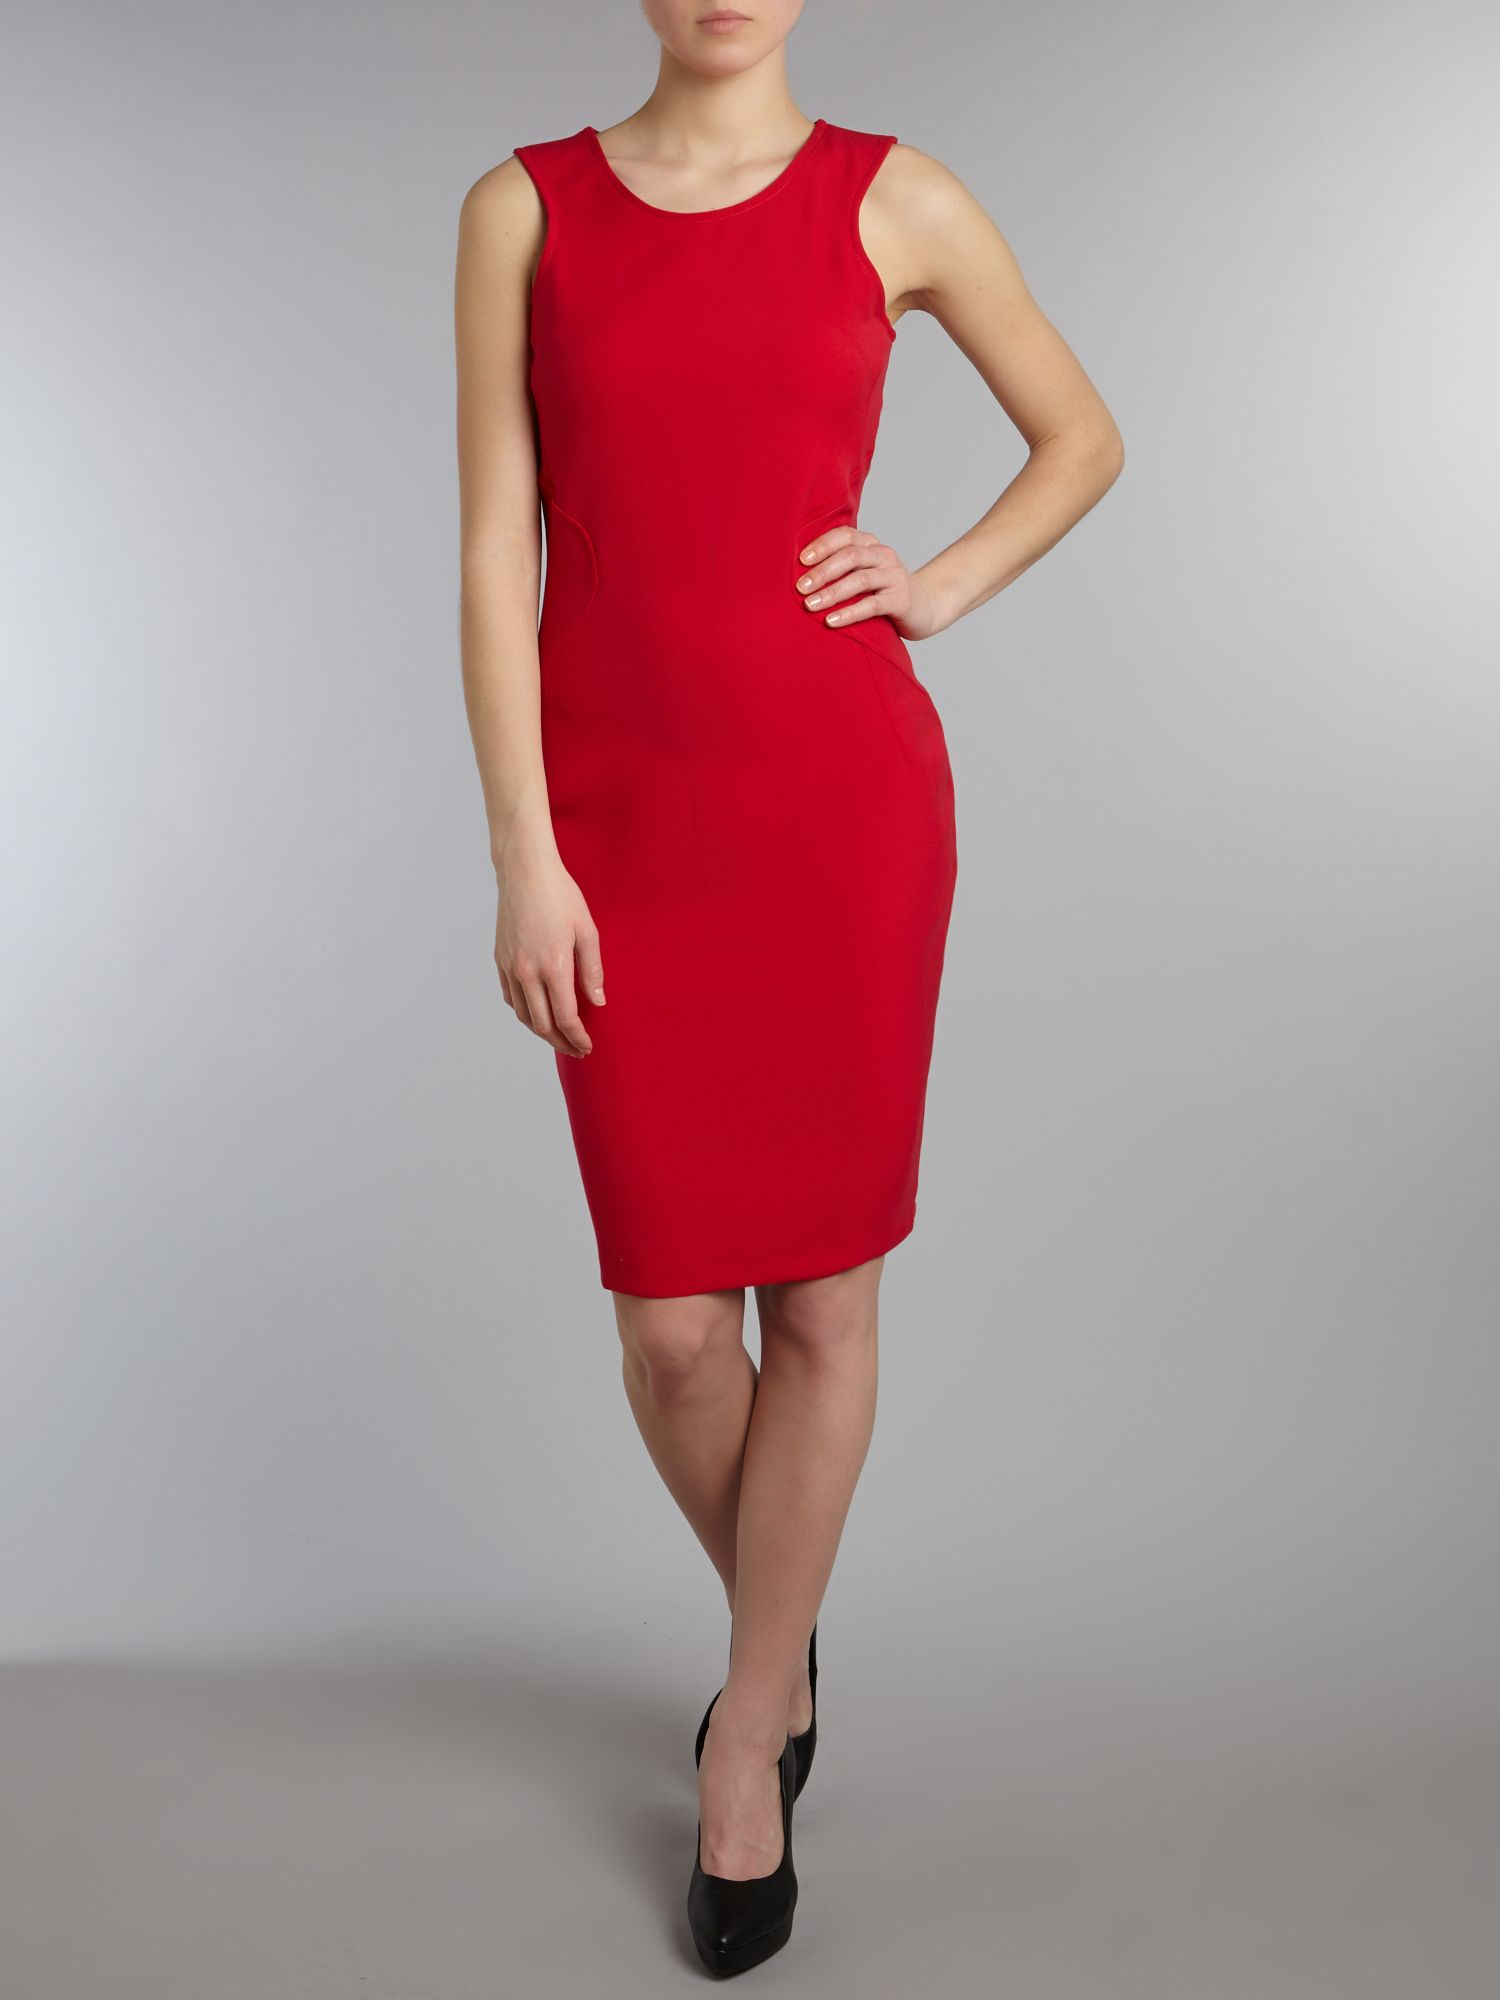 racer seam detail dress